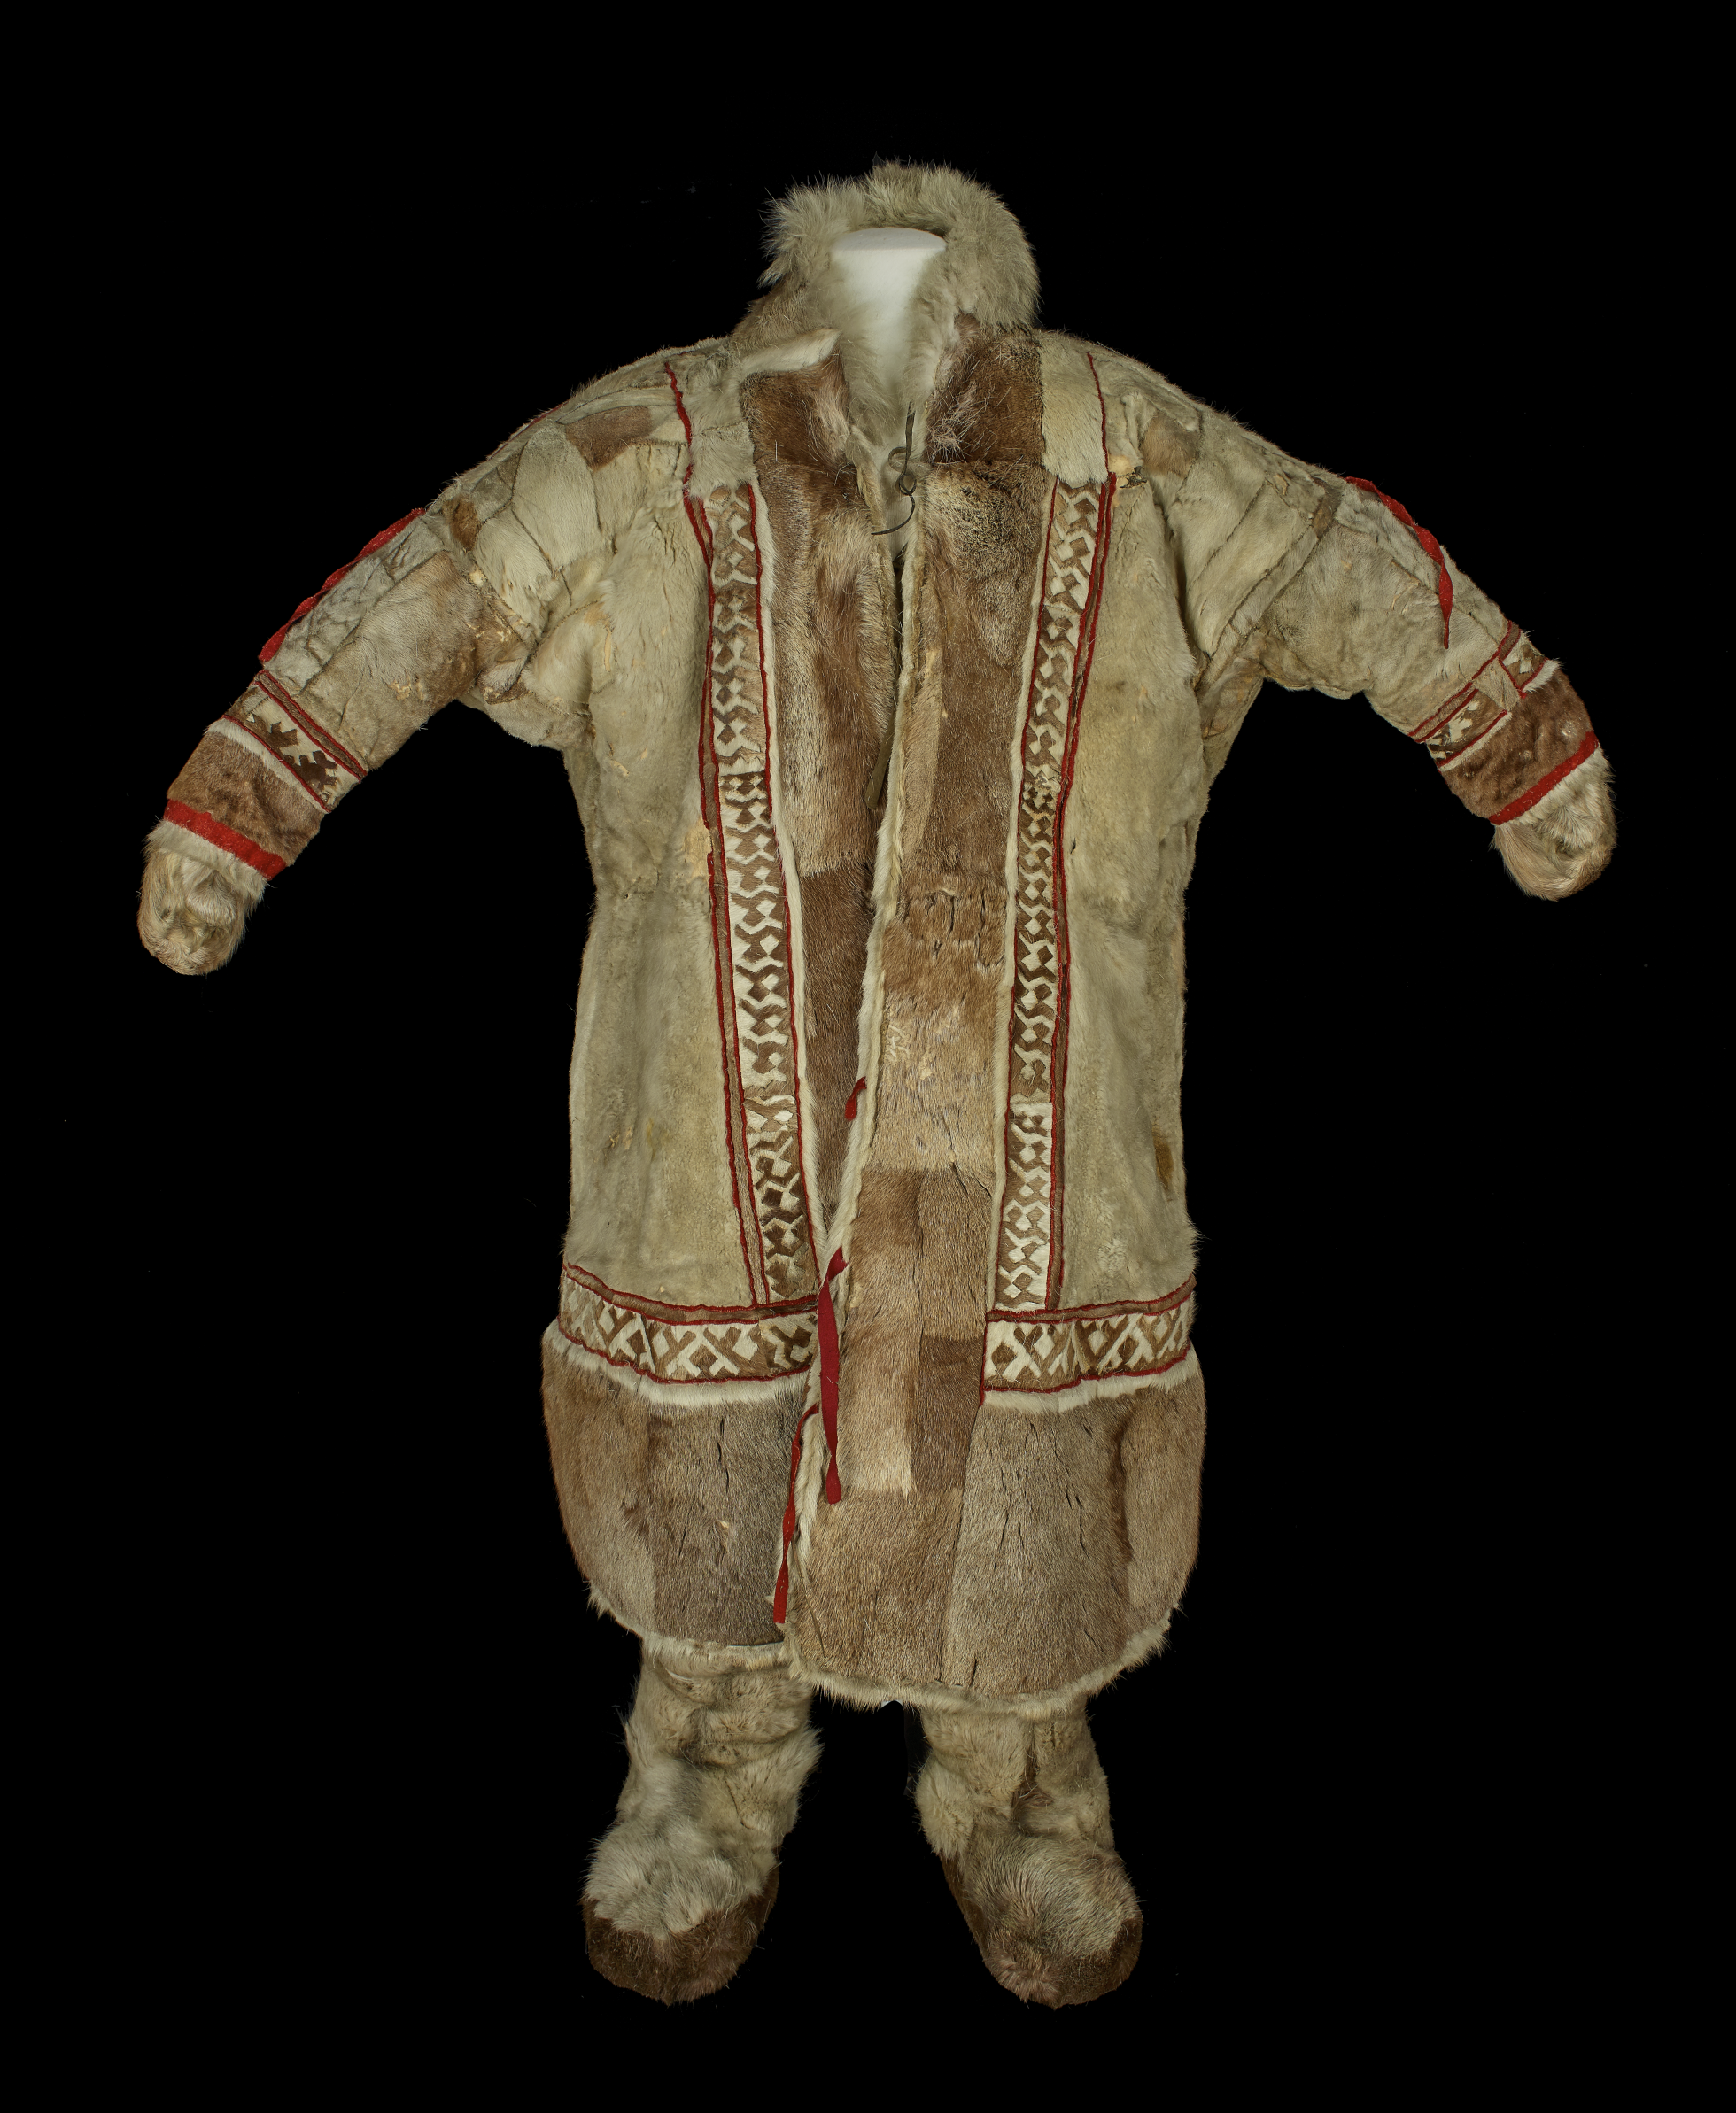 Photograph of a man's coat;. The coat is calf-length, slightly flared in shape, and made from many pieces of bear fur. The fur is cream and mid-brown in colour. It has a fur collar. Mittens poke out from sleeve ends. Strips of geometric patchwork (cream and brown fur) are stitched either side of the entre front opening, above hemline, and near sleeve ends. It is edged with red tabby woollen cloth.